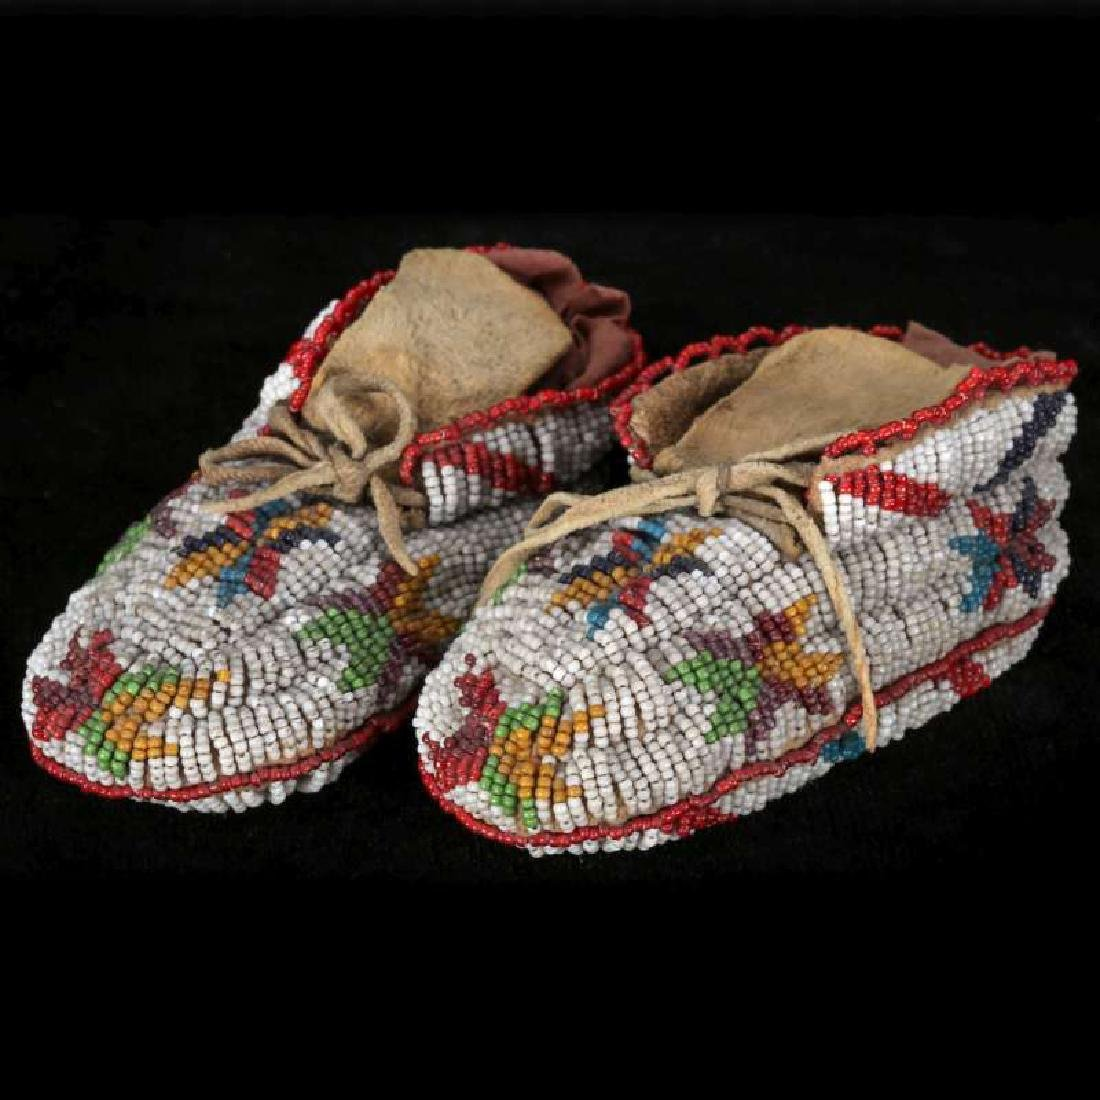 EARLY 20TH C. CHILD'S MOCCASINS WITH BEADED SOLES